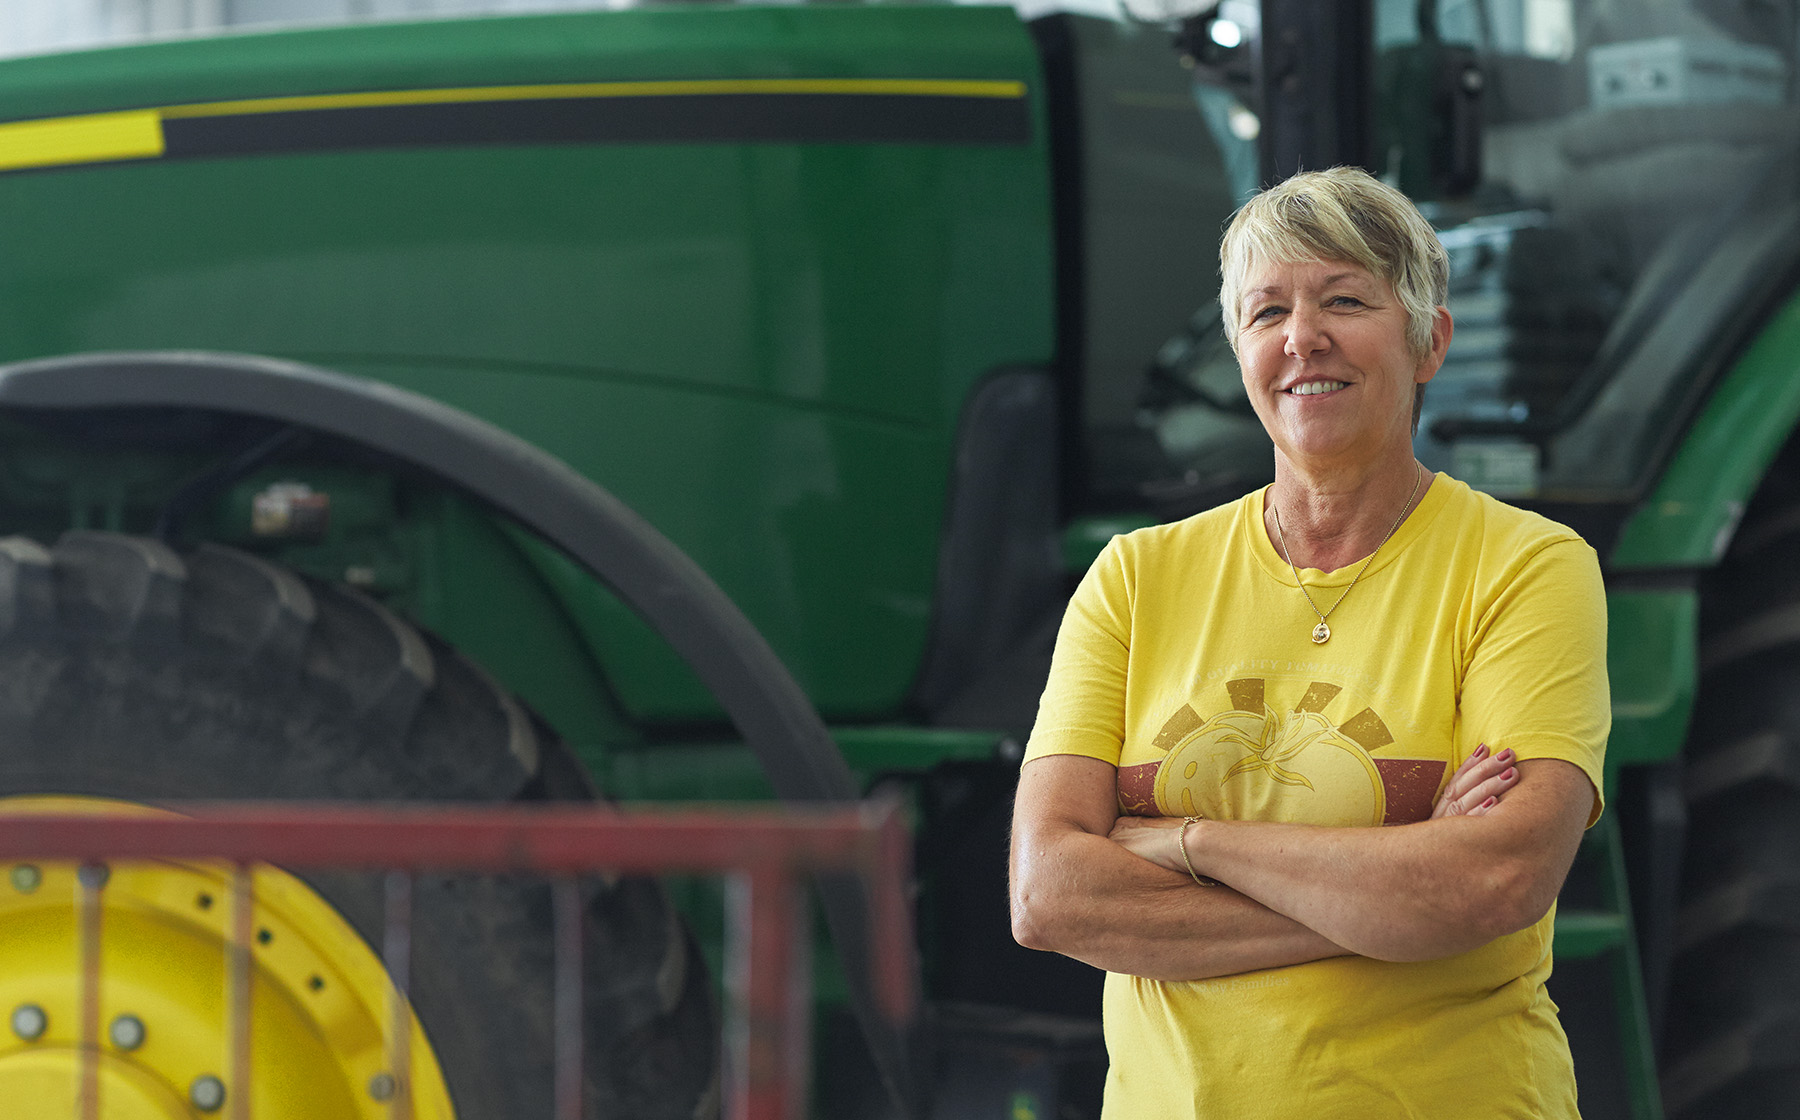 Image of Janice AcMoody wife to Vern who is a Red Gold Tomato grower standing in front of green tractor